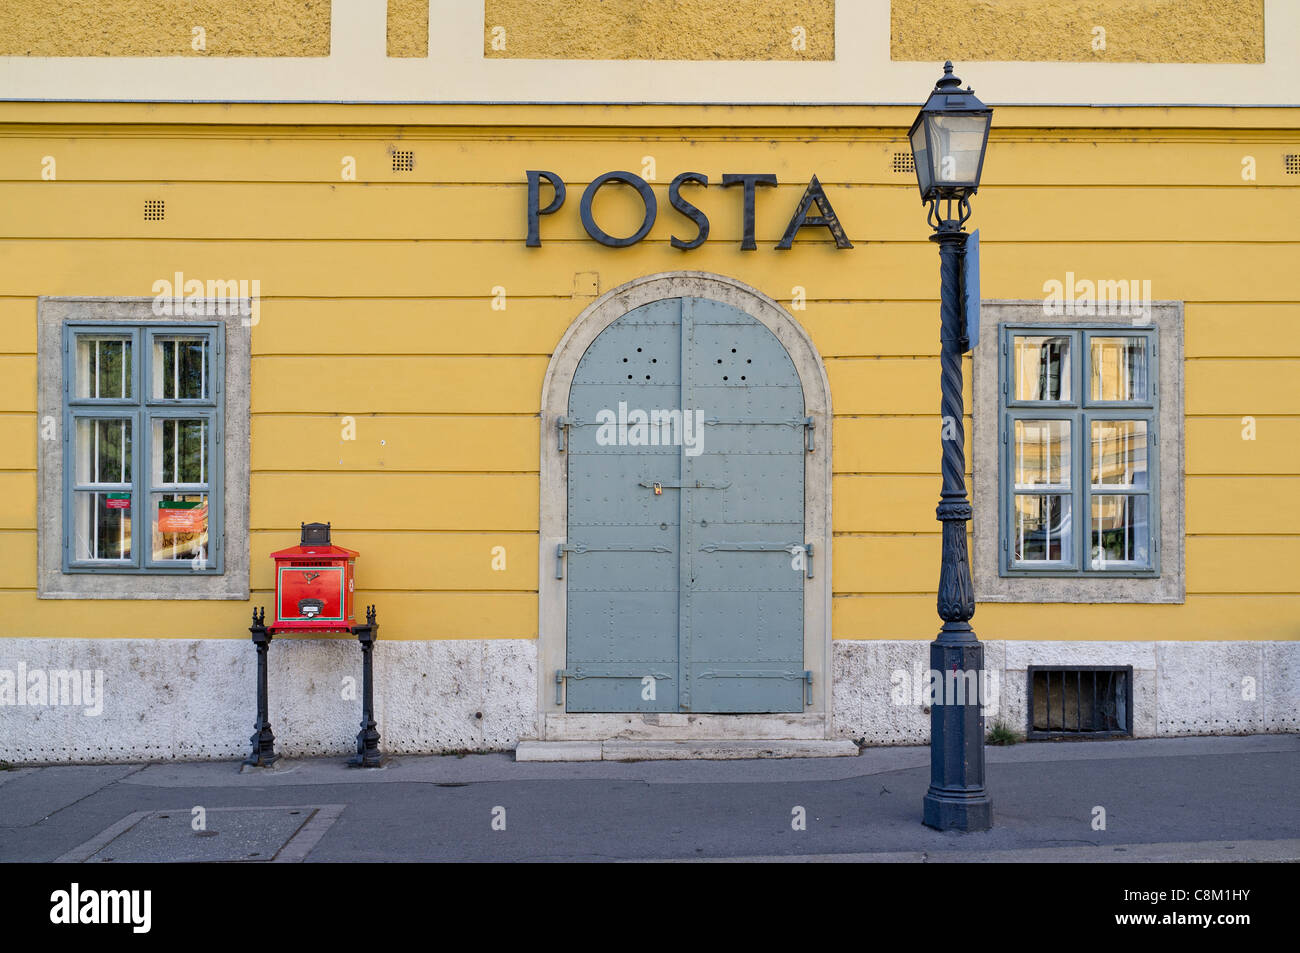 Budapest, a post office in Vár-hegy old Buda - Stock Image